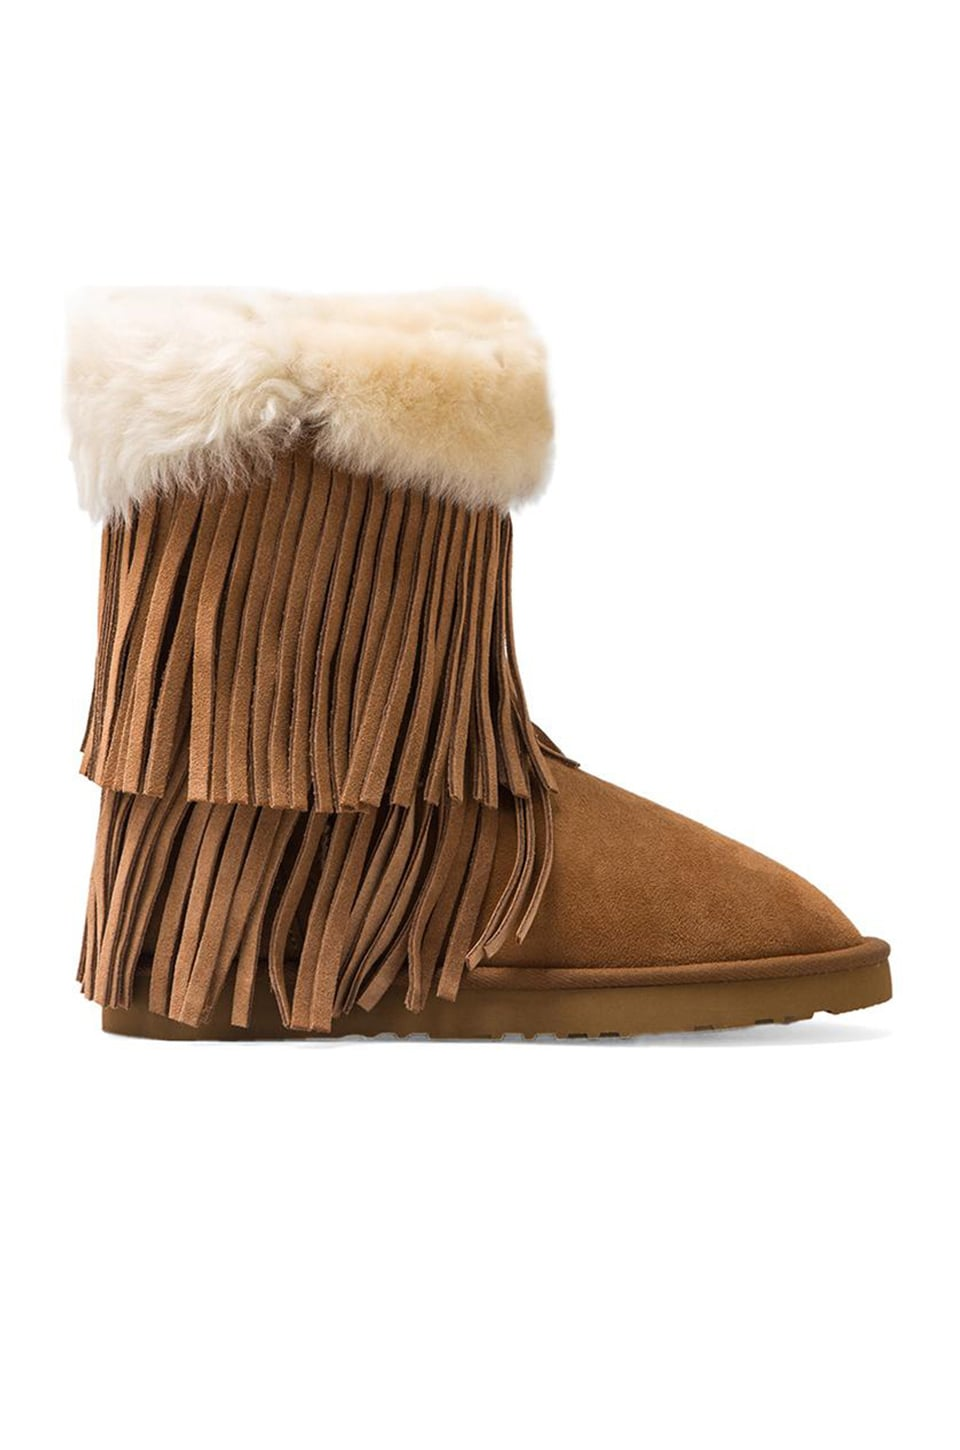 Koolaburra Haley II Boots with Twinface Sheepskin in Chestnut